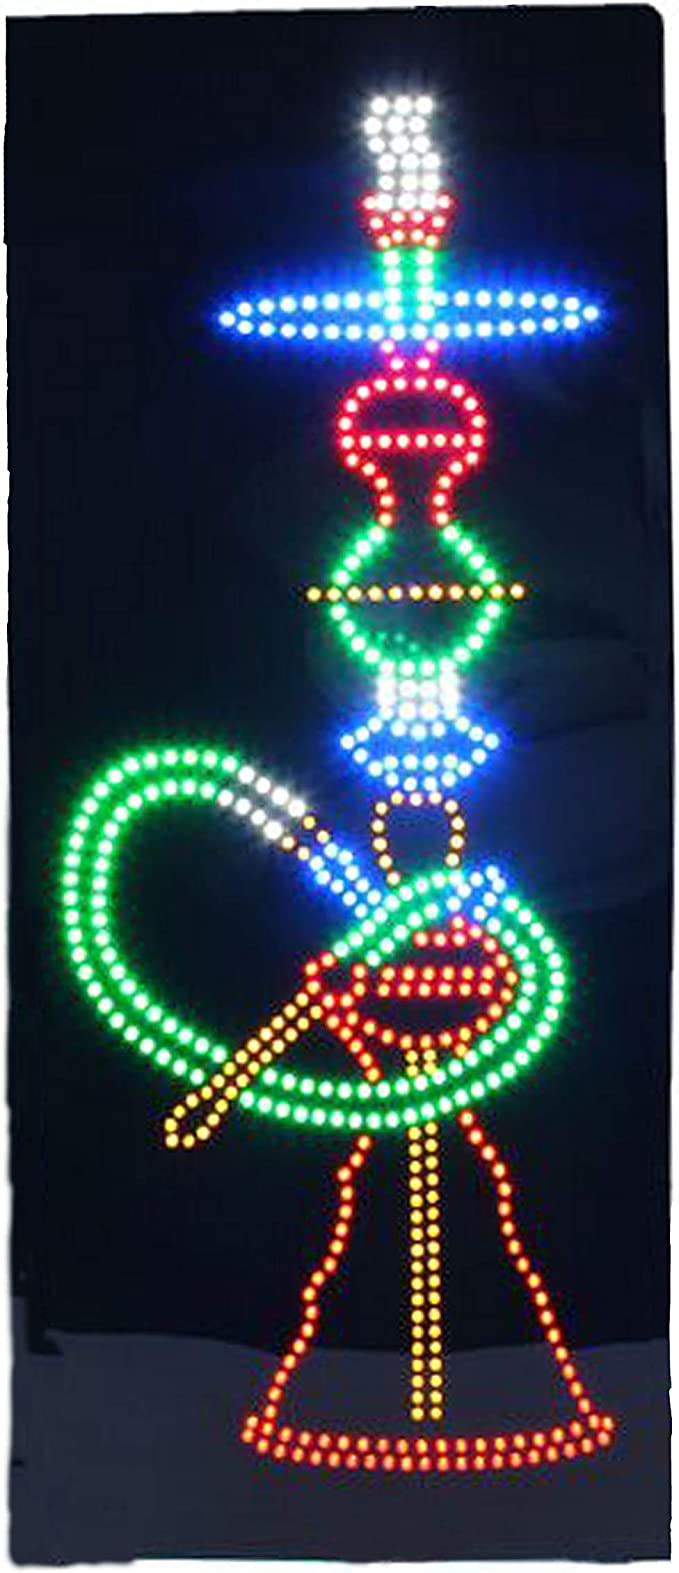 Lounge LED Sign Made in USA 27 x 11 x 1 inches